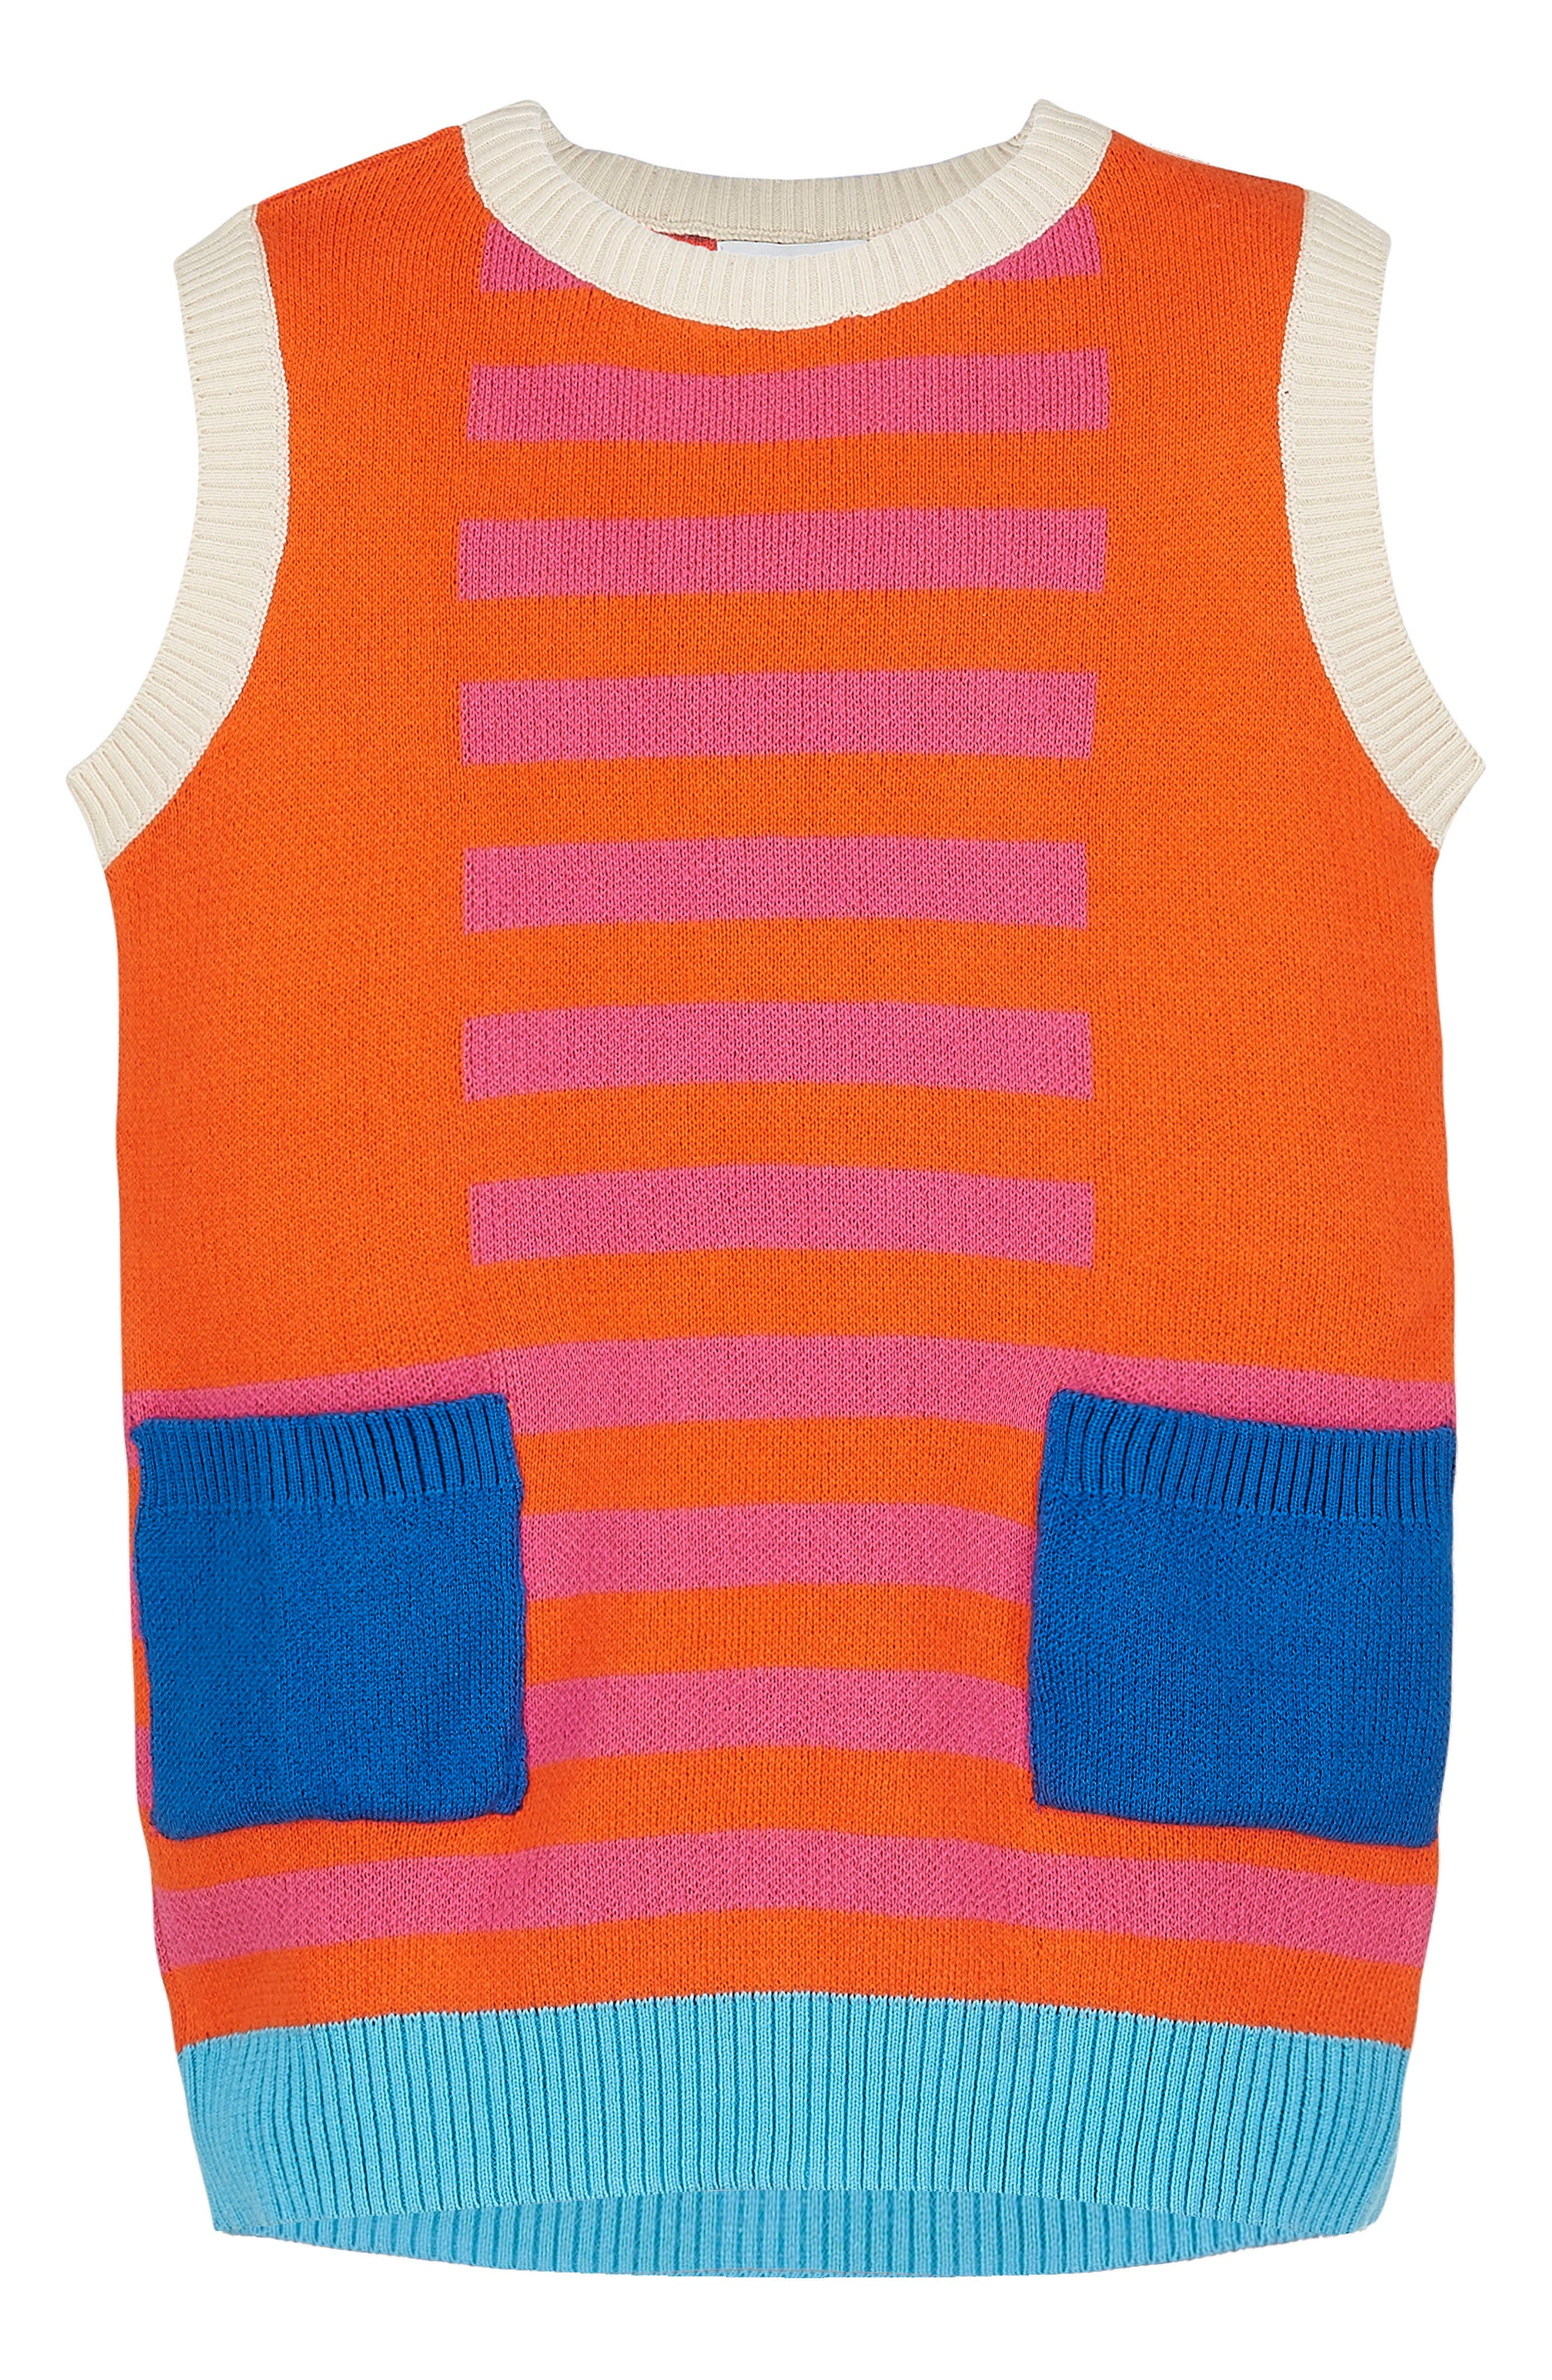 Margherita Retro Colorblock Sweater Knit Dress (Baby Girls)